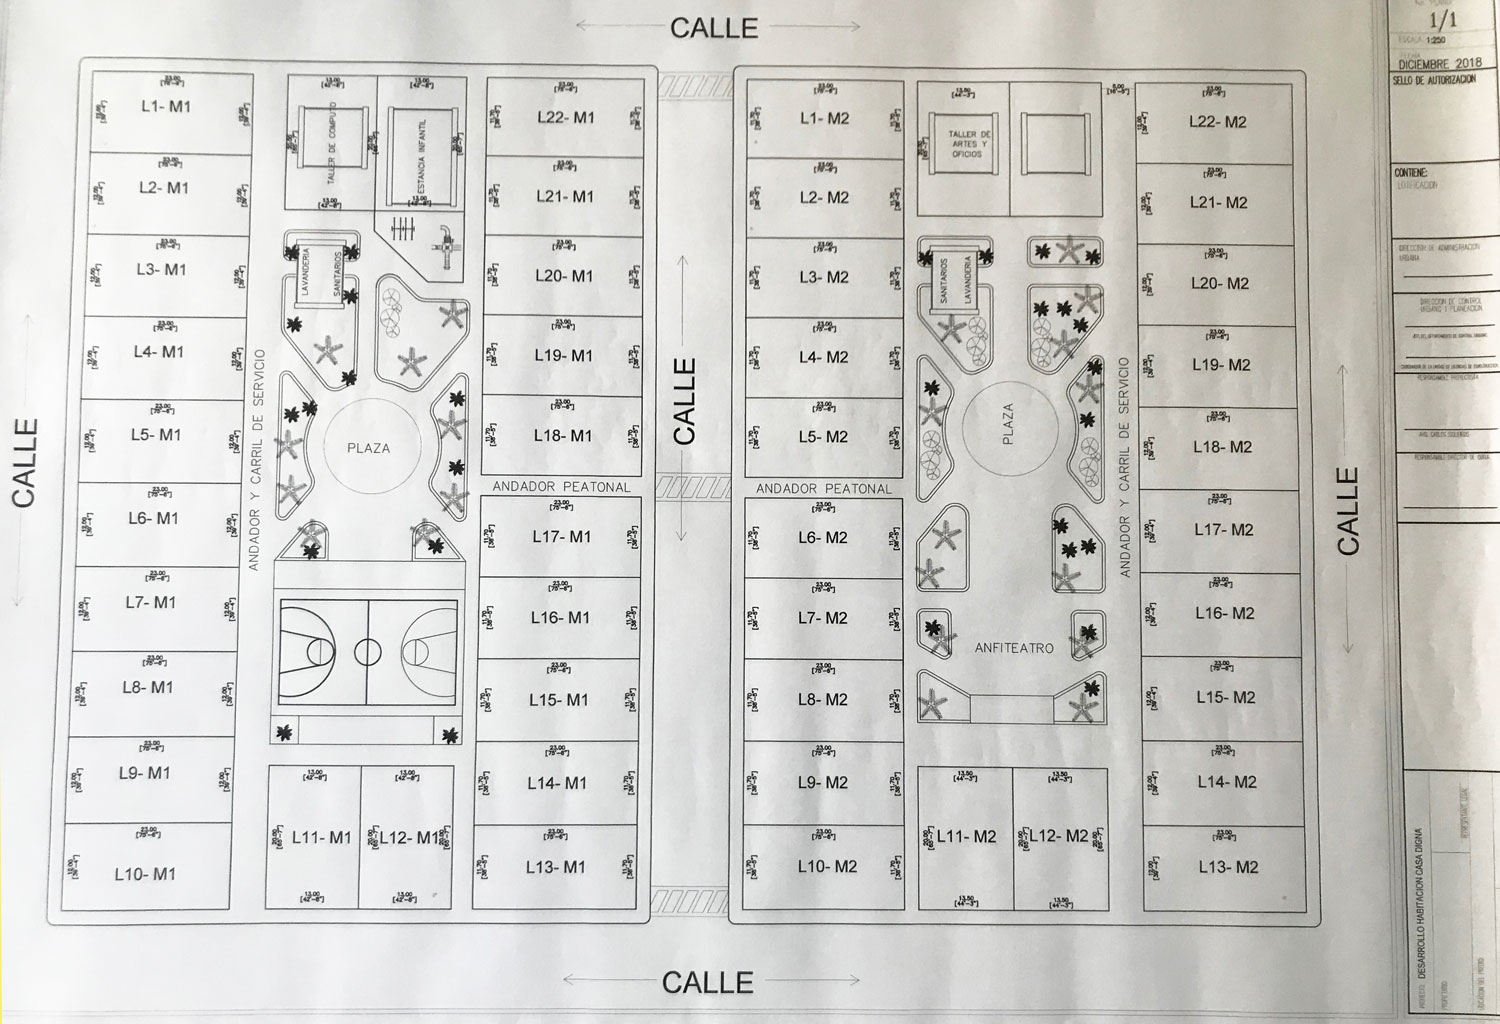 Casa Digna Map of Community